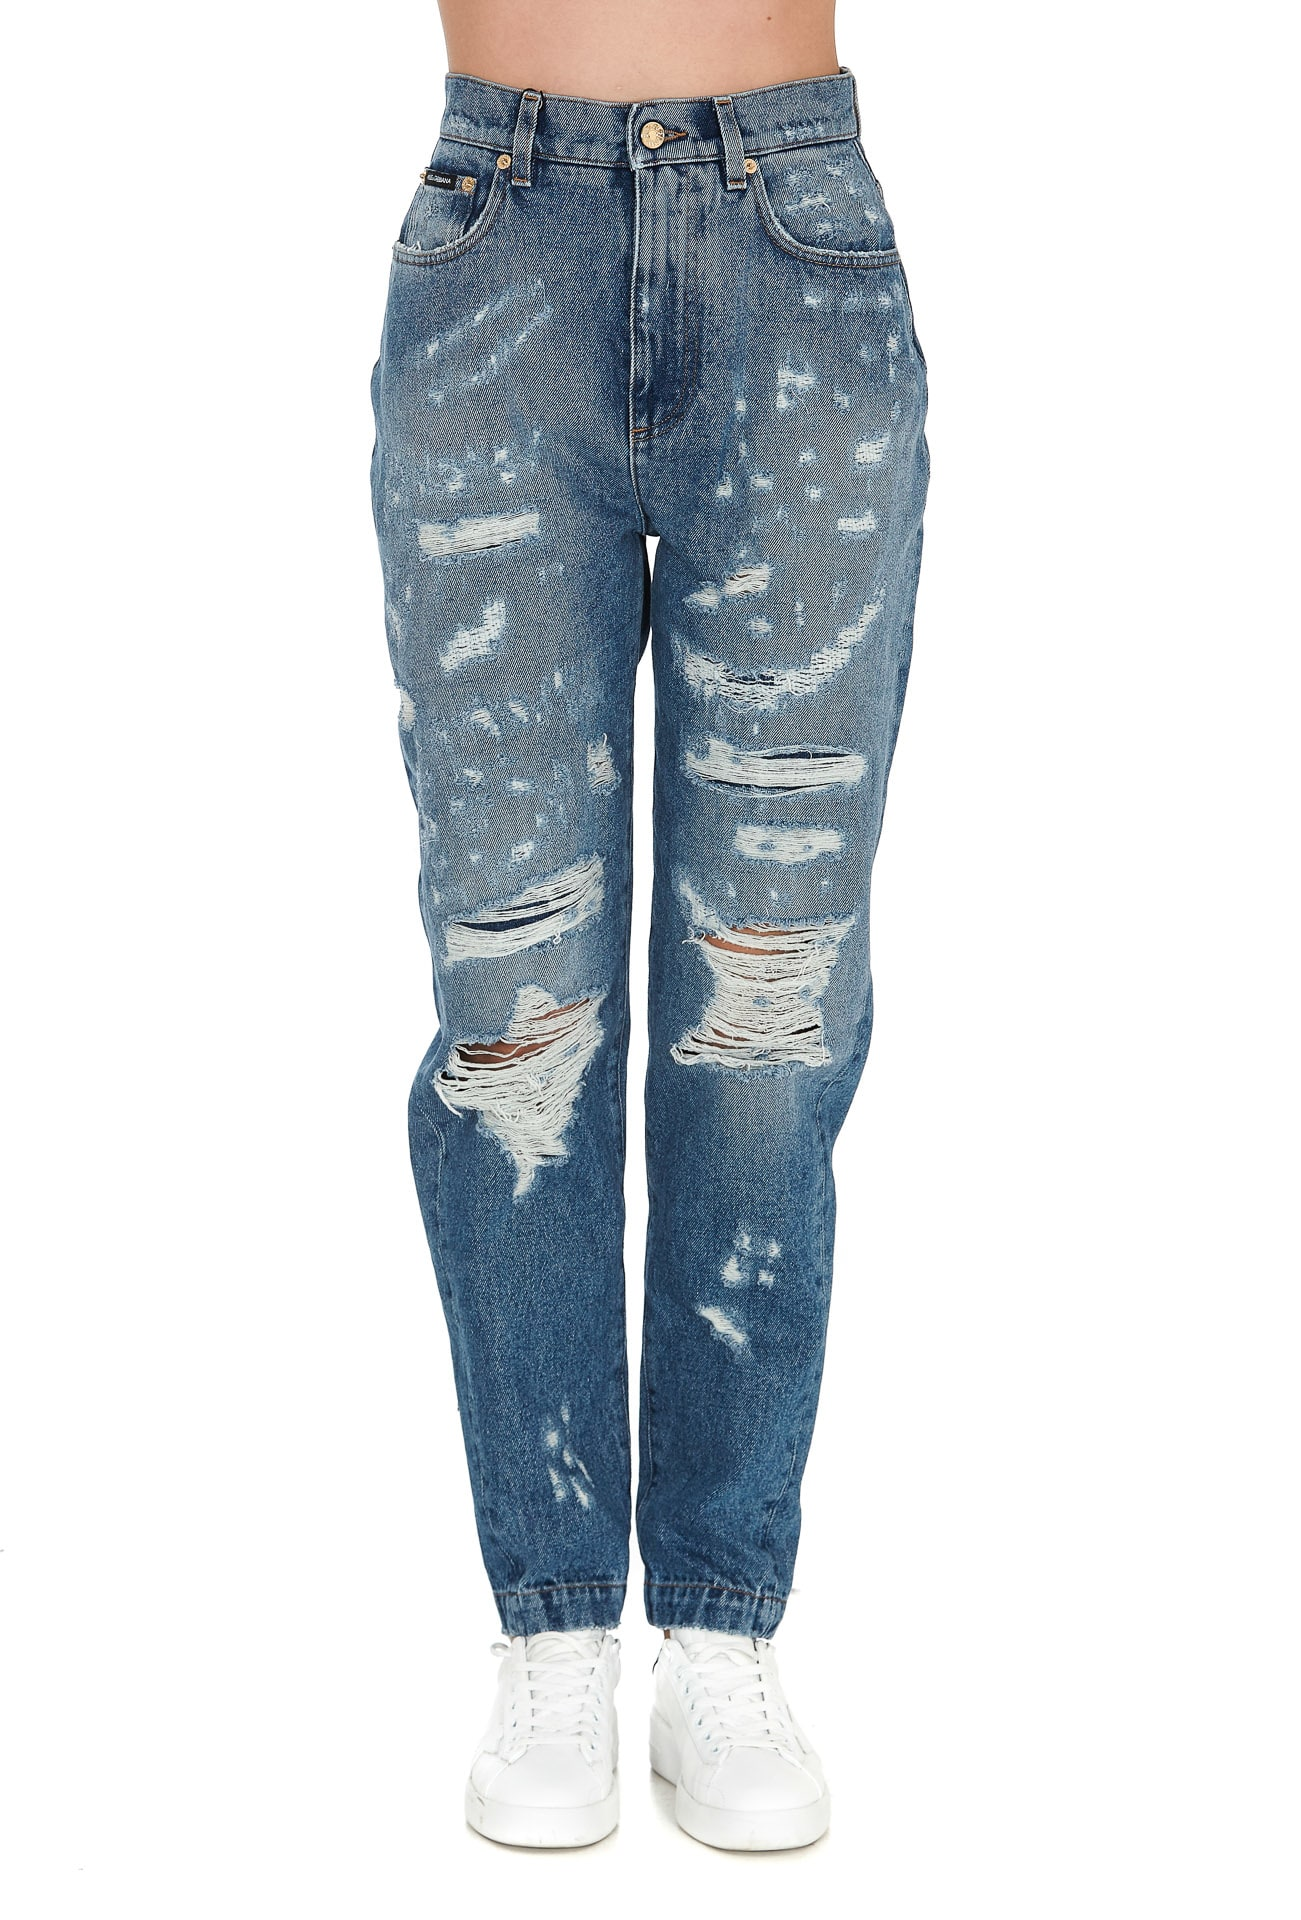 Dolce & Gabbana Jeans DISTRESSED JEANS